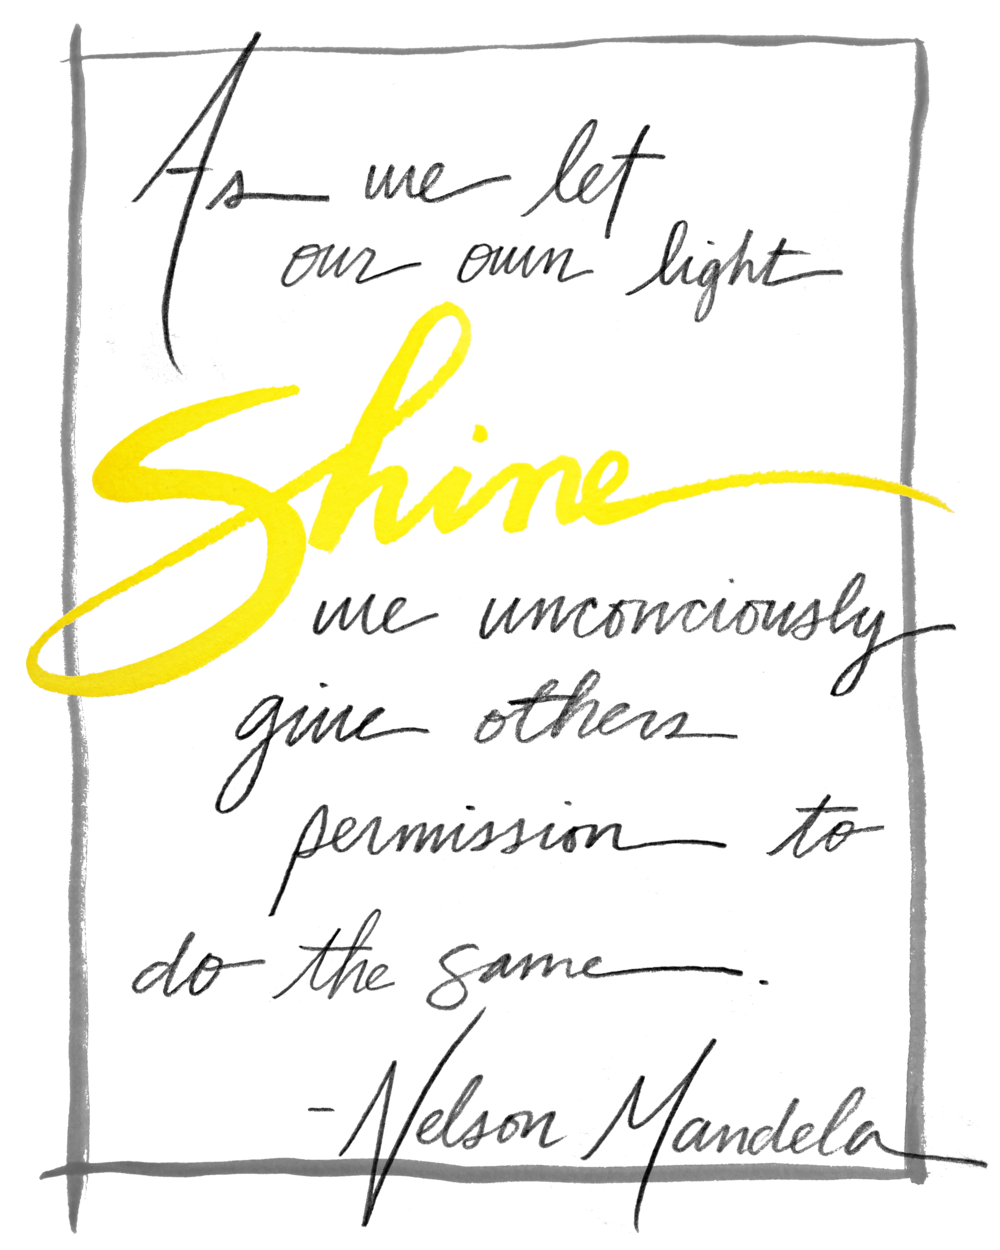 as we let our own light shine, we unconsciously give others permission to do the same. Nelson Mandela - hand lettered quote by paige poppe - issue 05 belong magazine - free download and print